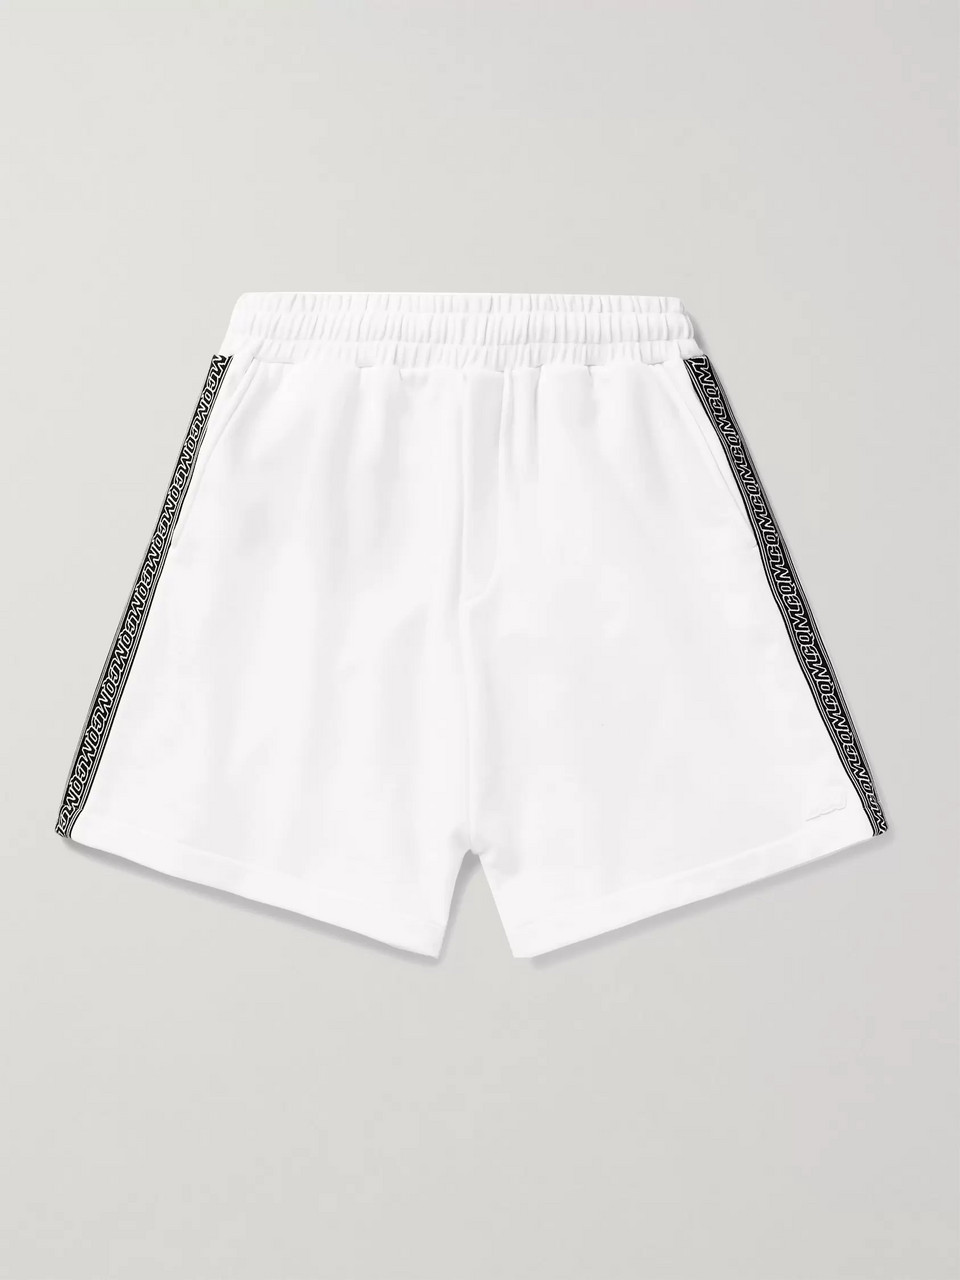 McQ Alexander McQueen Logo-Trimmed Loopback Cotton-Jersey Shorts